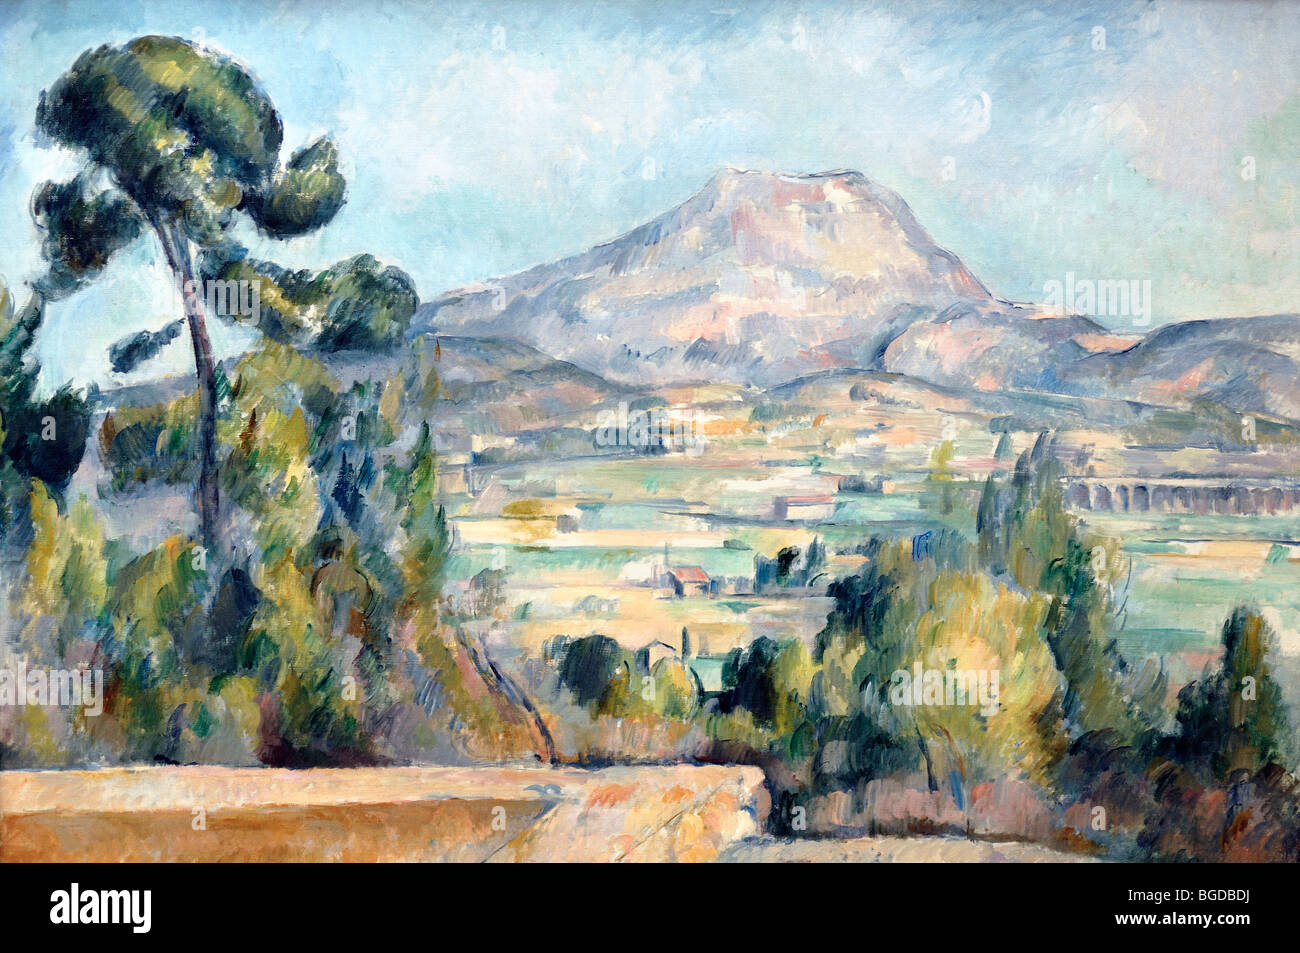 Montagne Sainte Victoire (c1890), or Mont Sainte Victoire Mountain near Aix-en-Provence, Oil Painting by Paul Cezanne - Stock Image